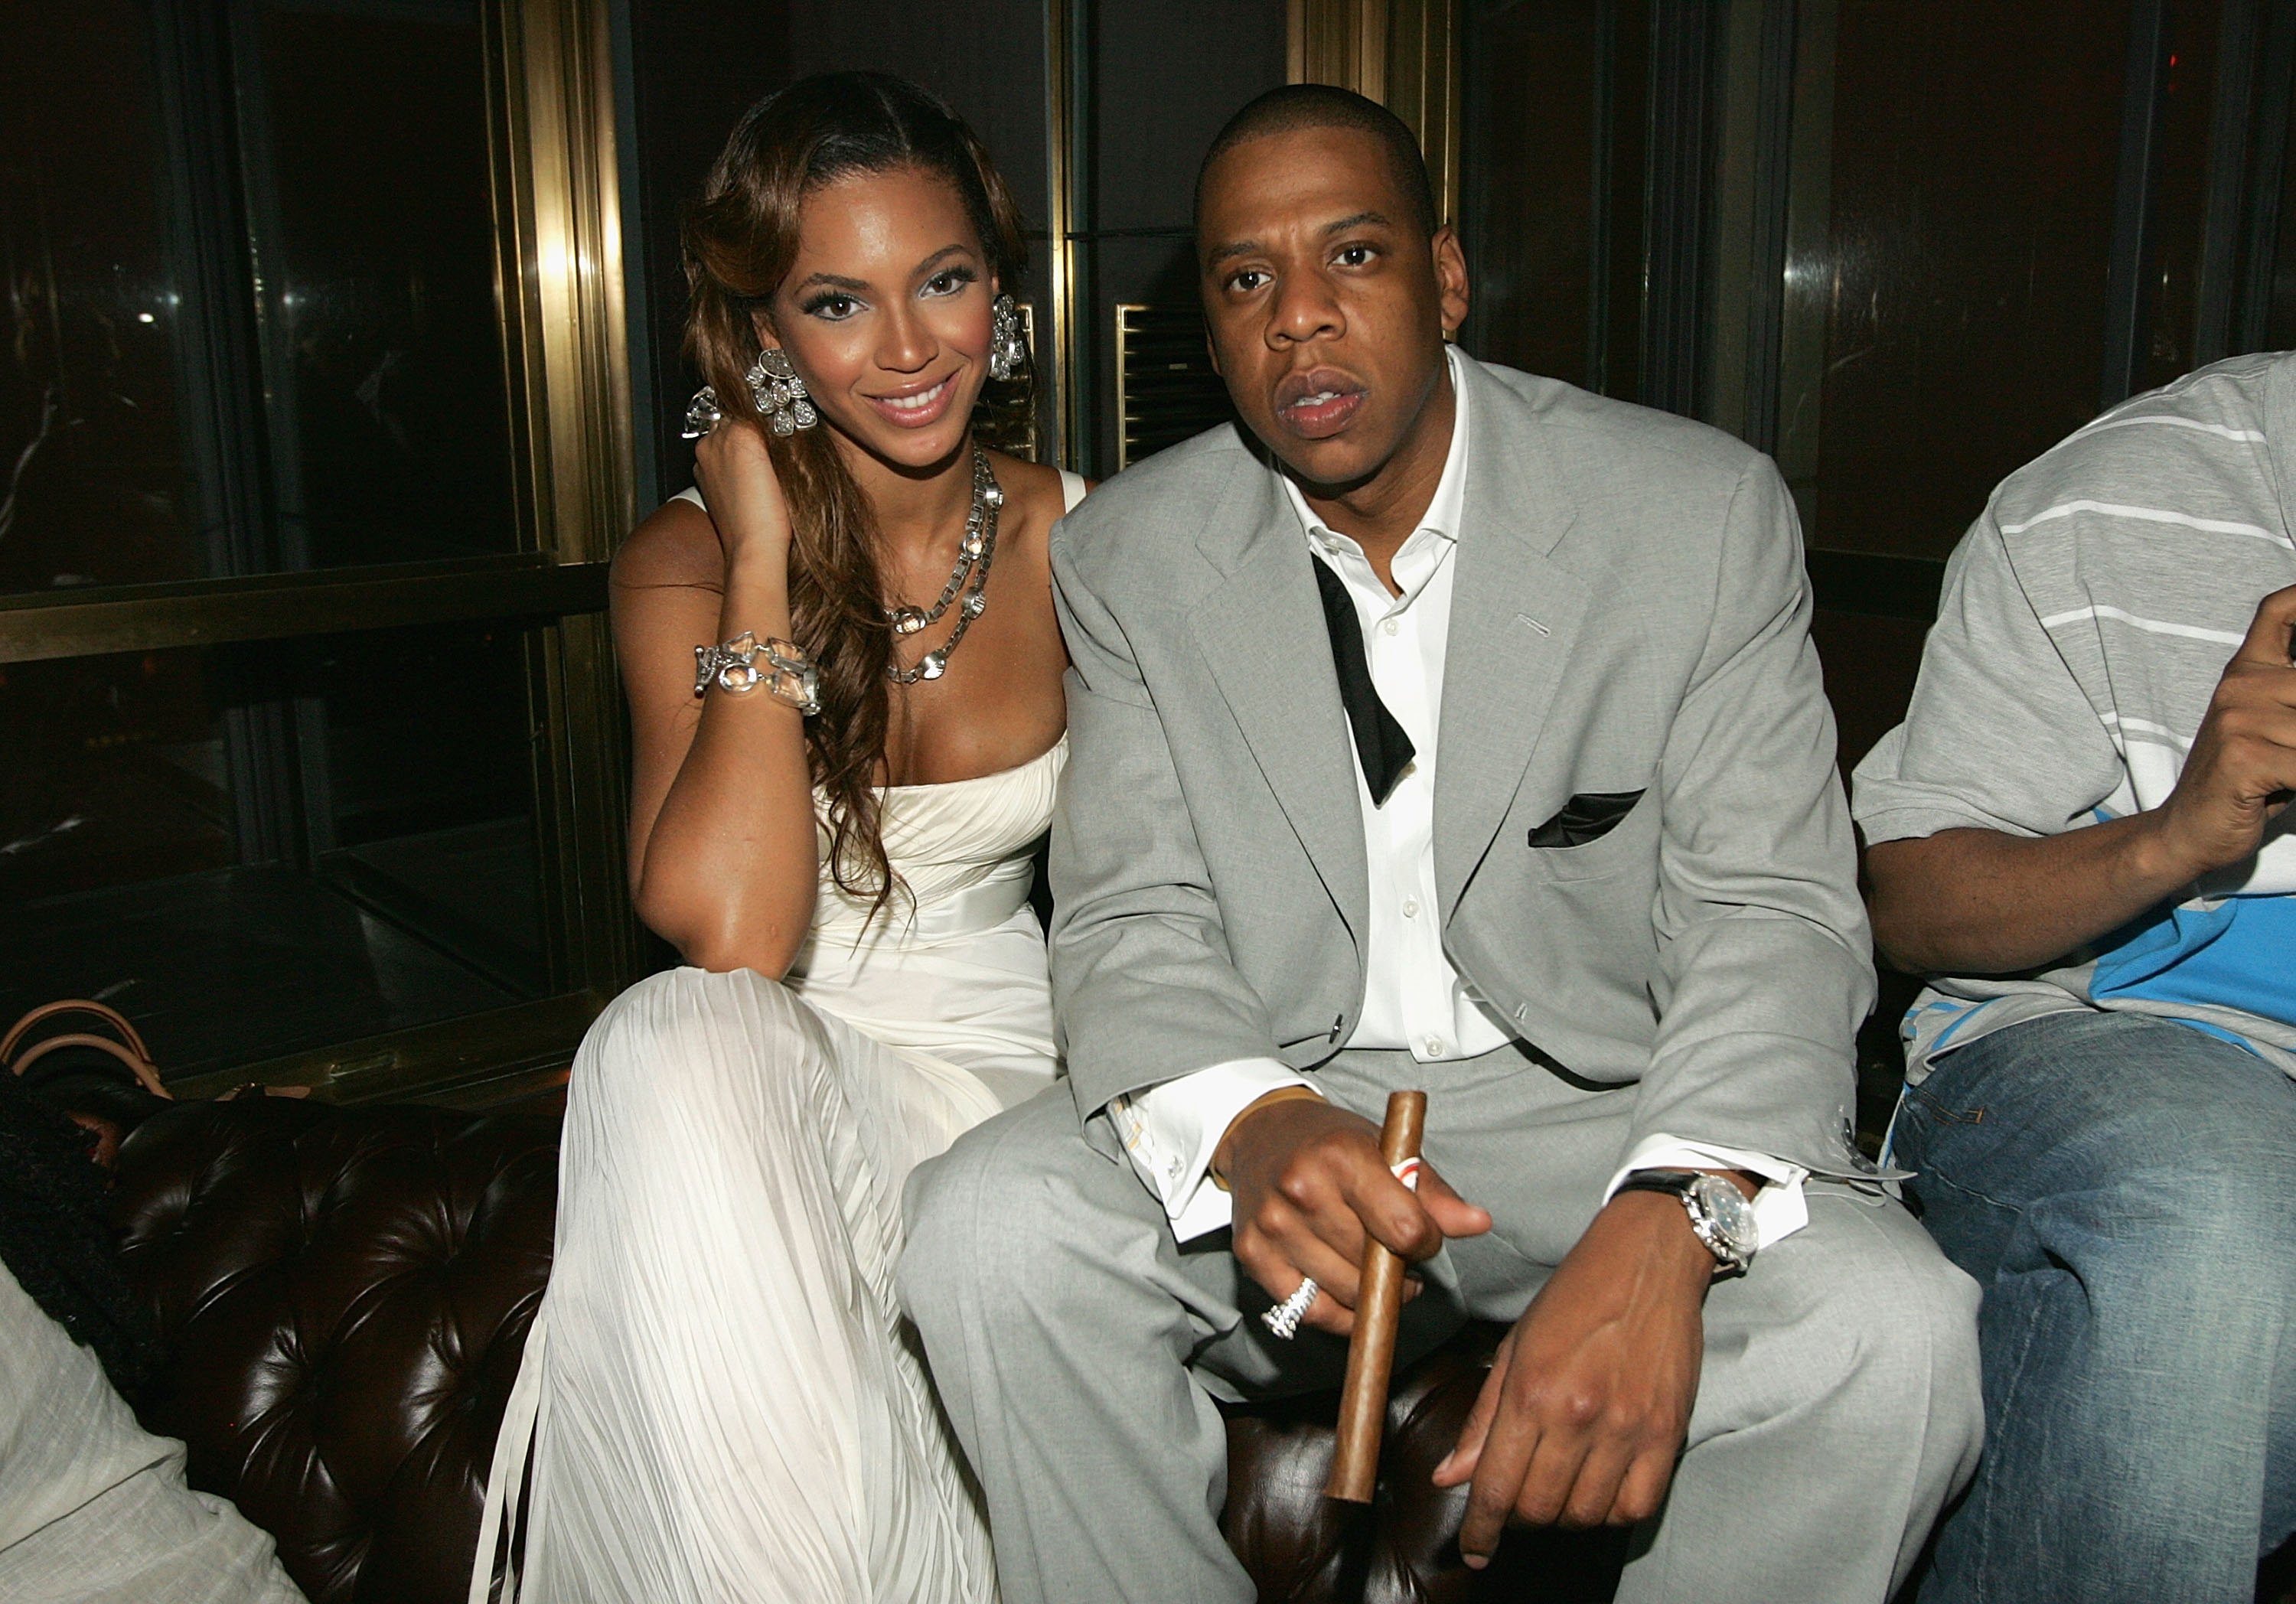 41044_Beyonce_Jay_Z_In_Concert_At_Radio_City_Music_Hall_After_Party_02.jpg